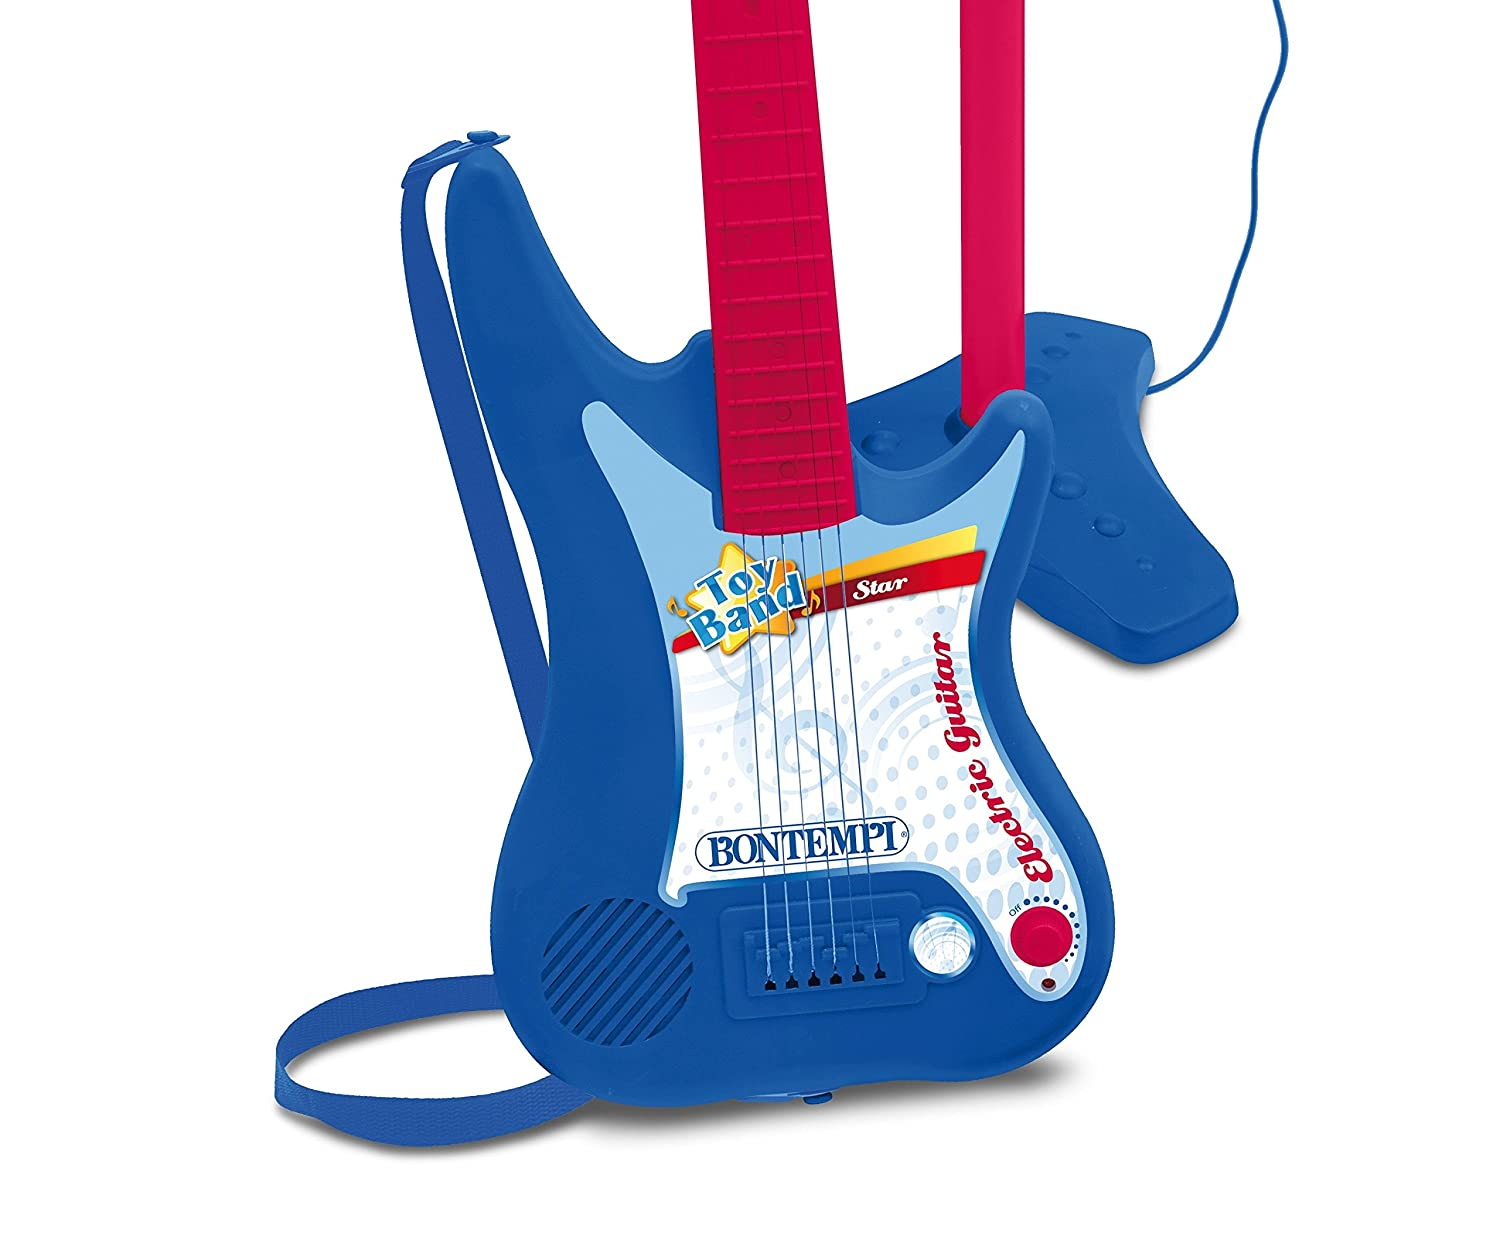 Bontempi - Guitarra eléctrica con Amplificador y micrófono con Soporte (Spanish Business Option Tradding 24 7540): Amazon.es: Juguetes y juegos